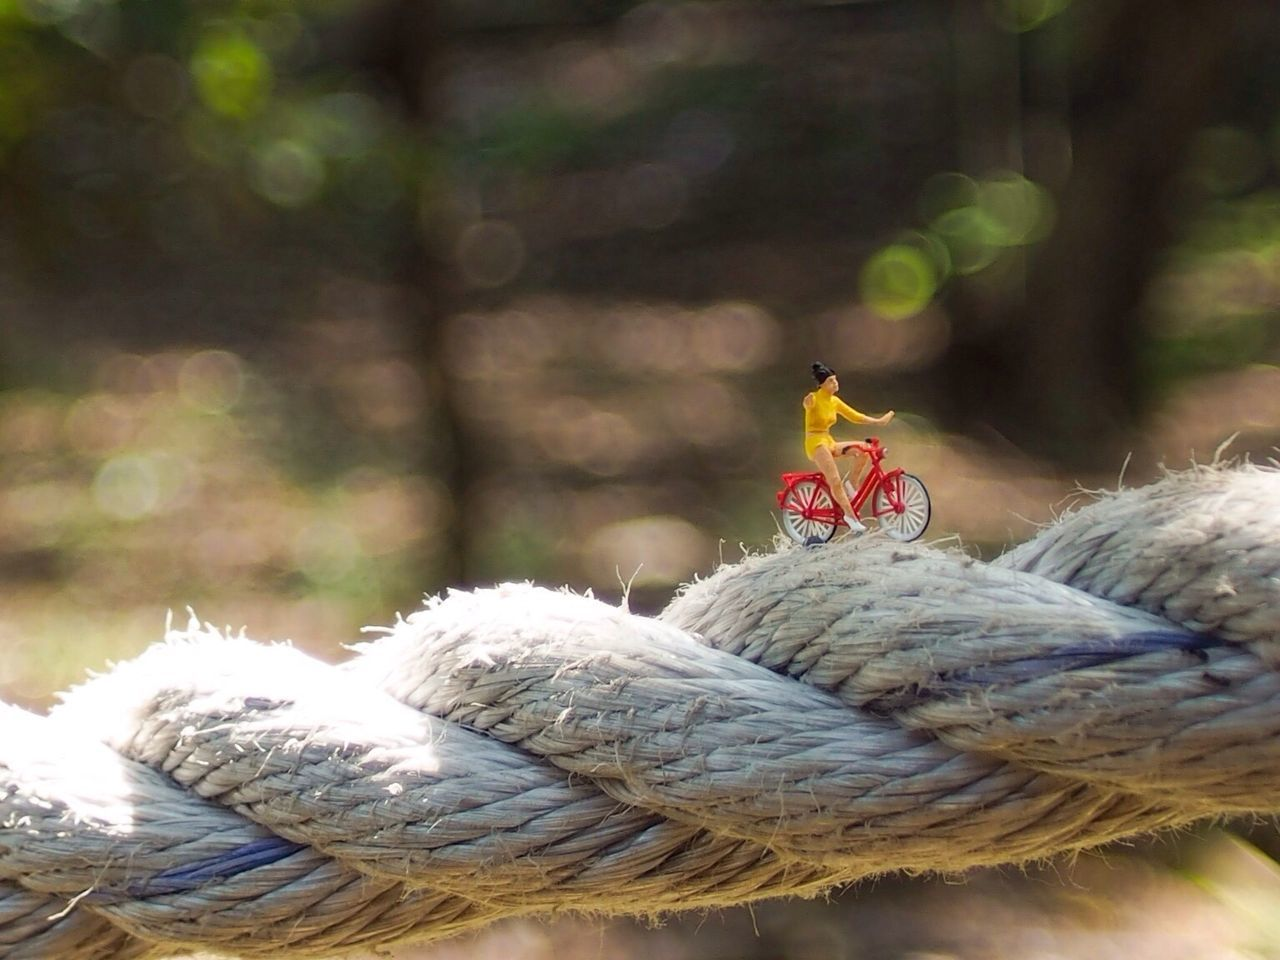 Balancing Bicycle Transportation Close-up Focus On Foreground Selective Focus Red Surface Level Miniature Minifigure Preiser Preiserphotography Toyphotography Toy Streetphotography Creative Photography Creative Bokeh Bokehlicious